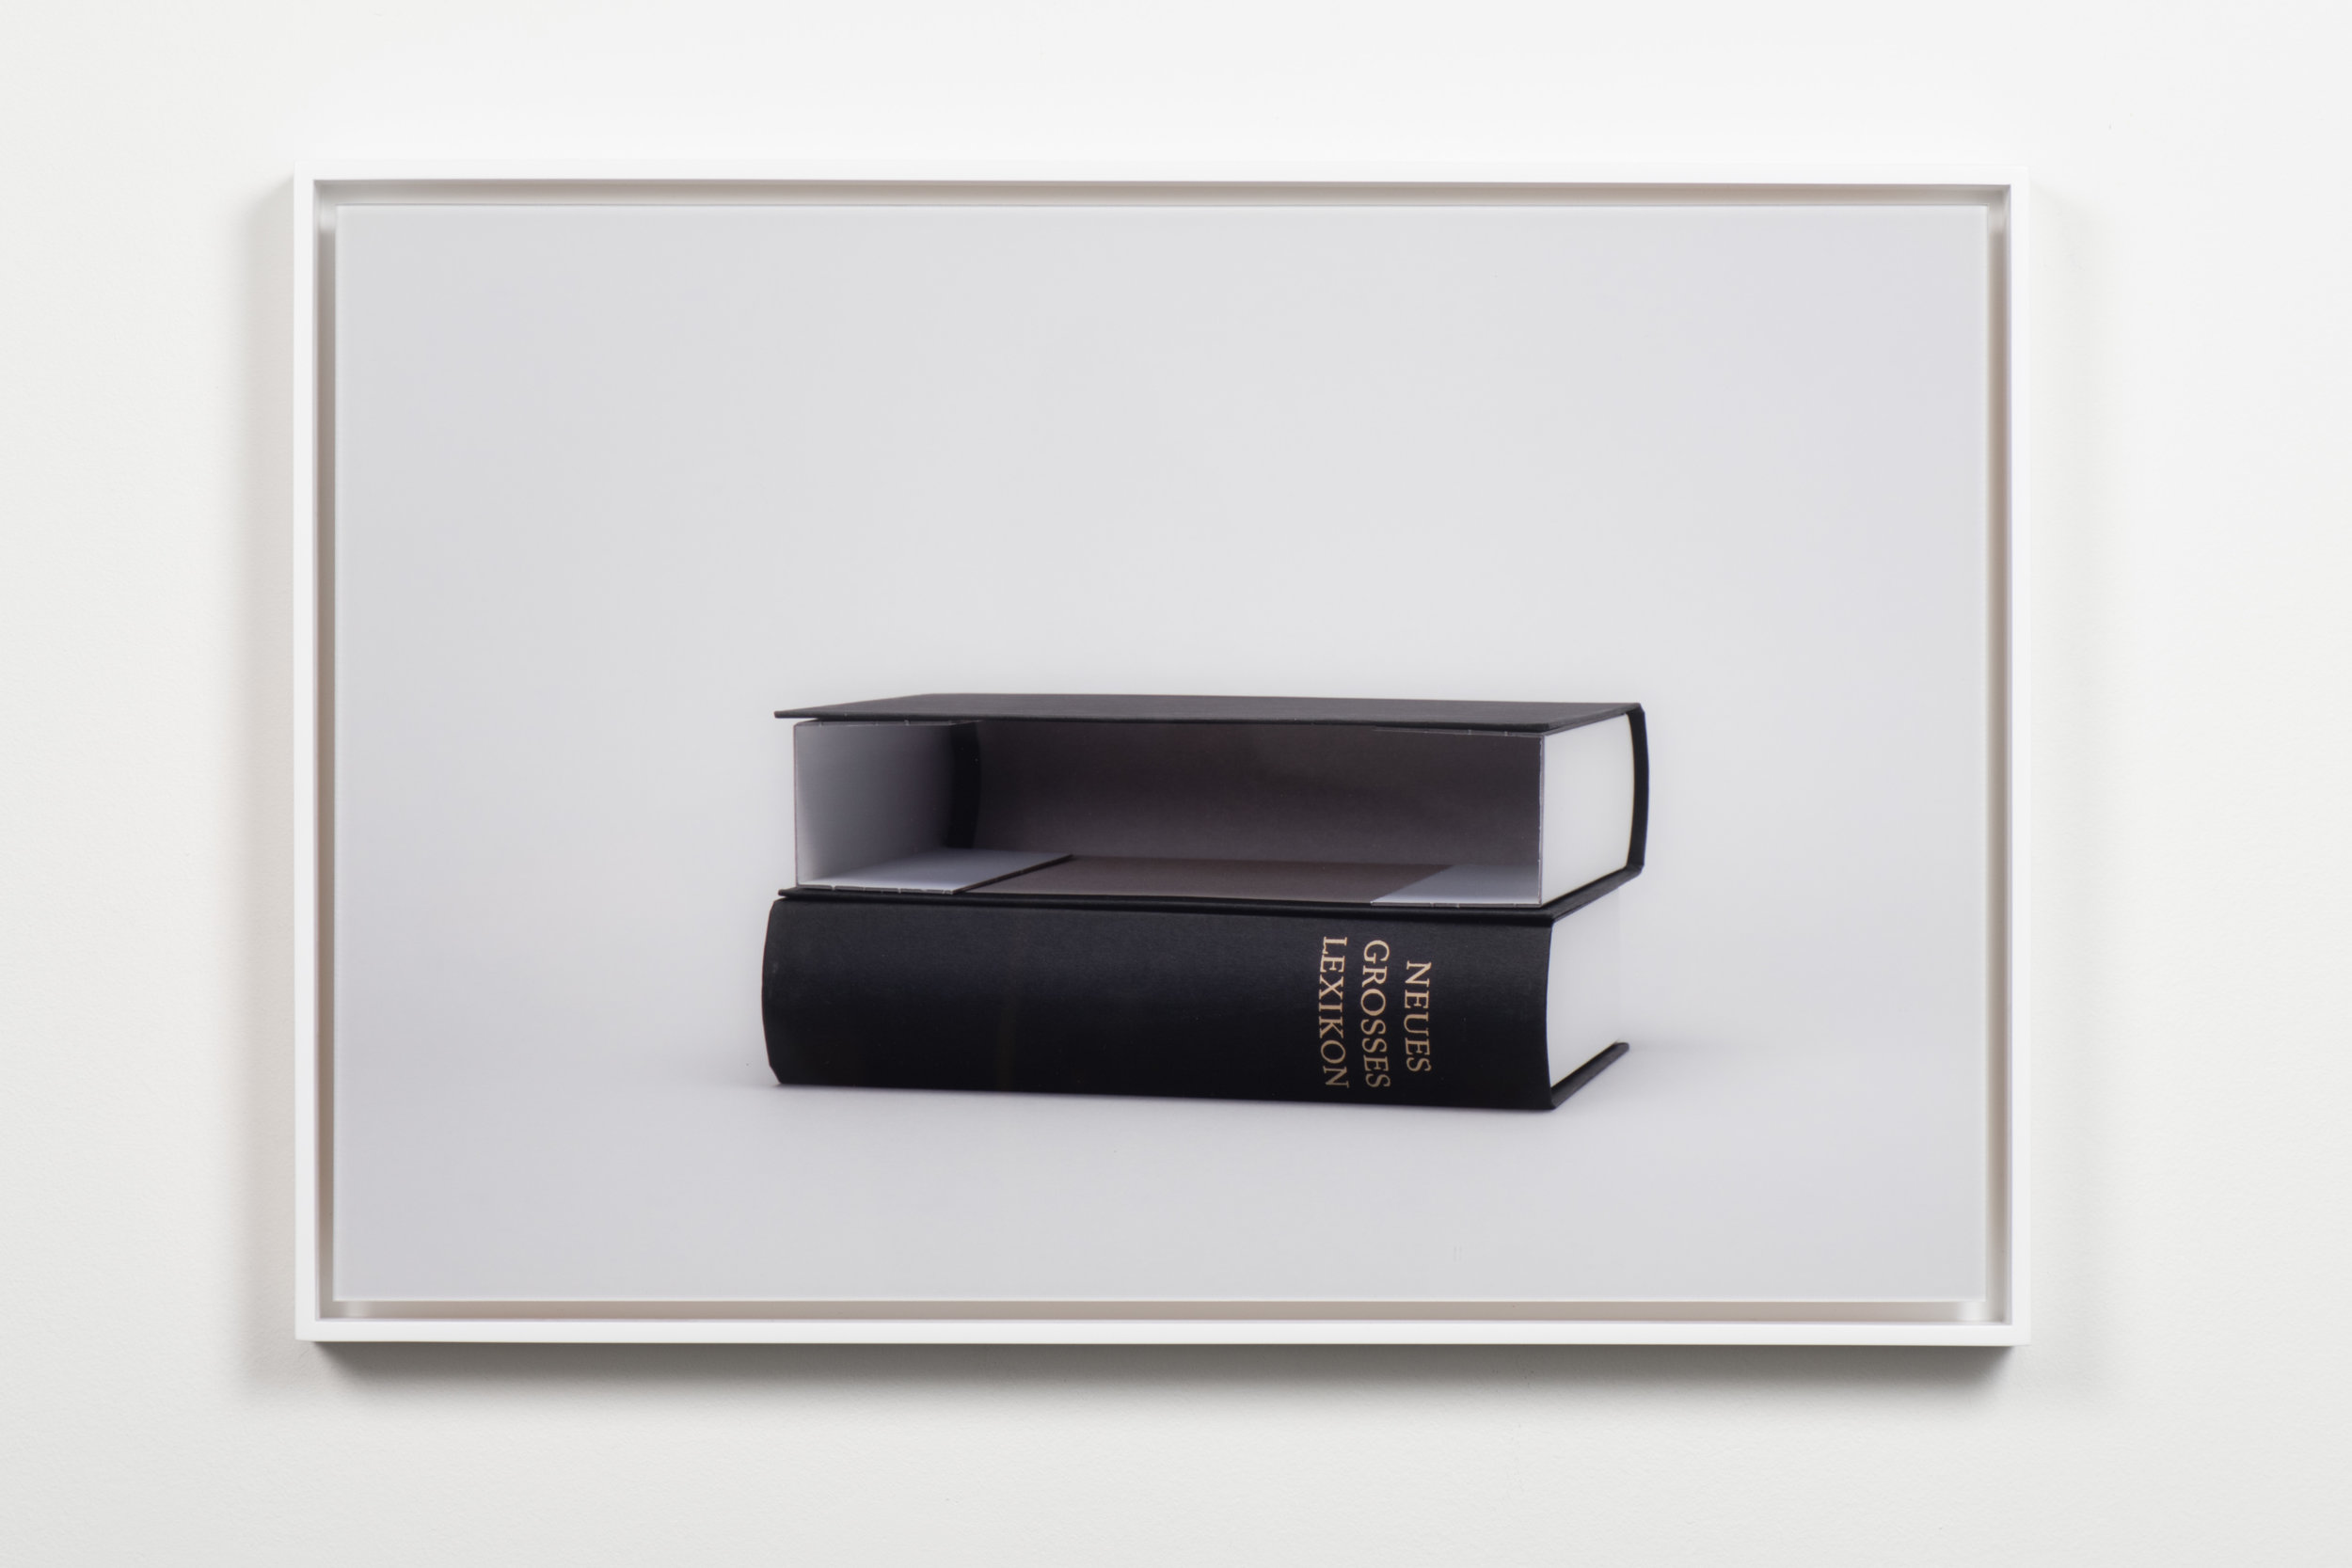 New Large Dictionary (Neues Grosses Lexikon) , 2017 Framed chromogenic print 13 3/16 x 19 7/8 inches Edition of 5 + 2 APs KISC-0015 $2,400